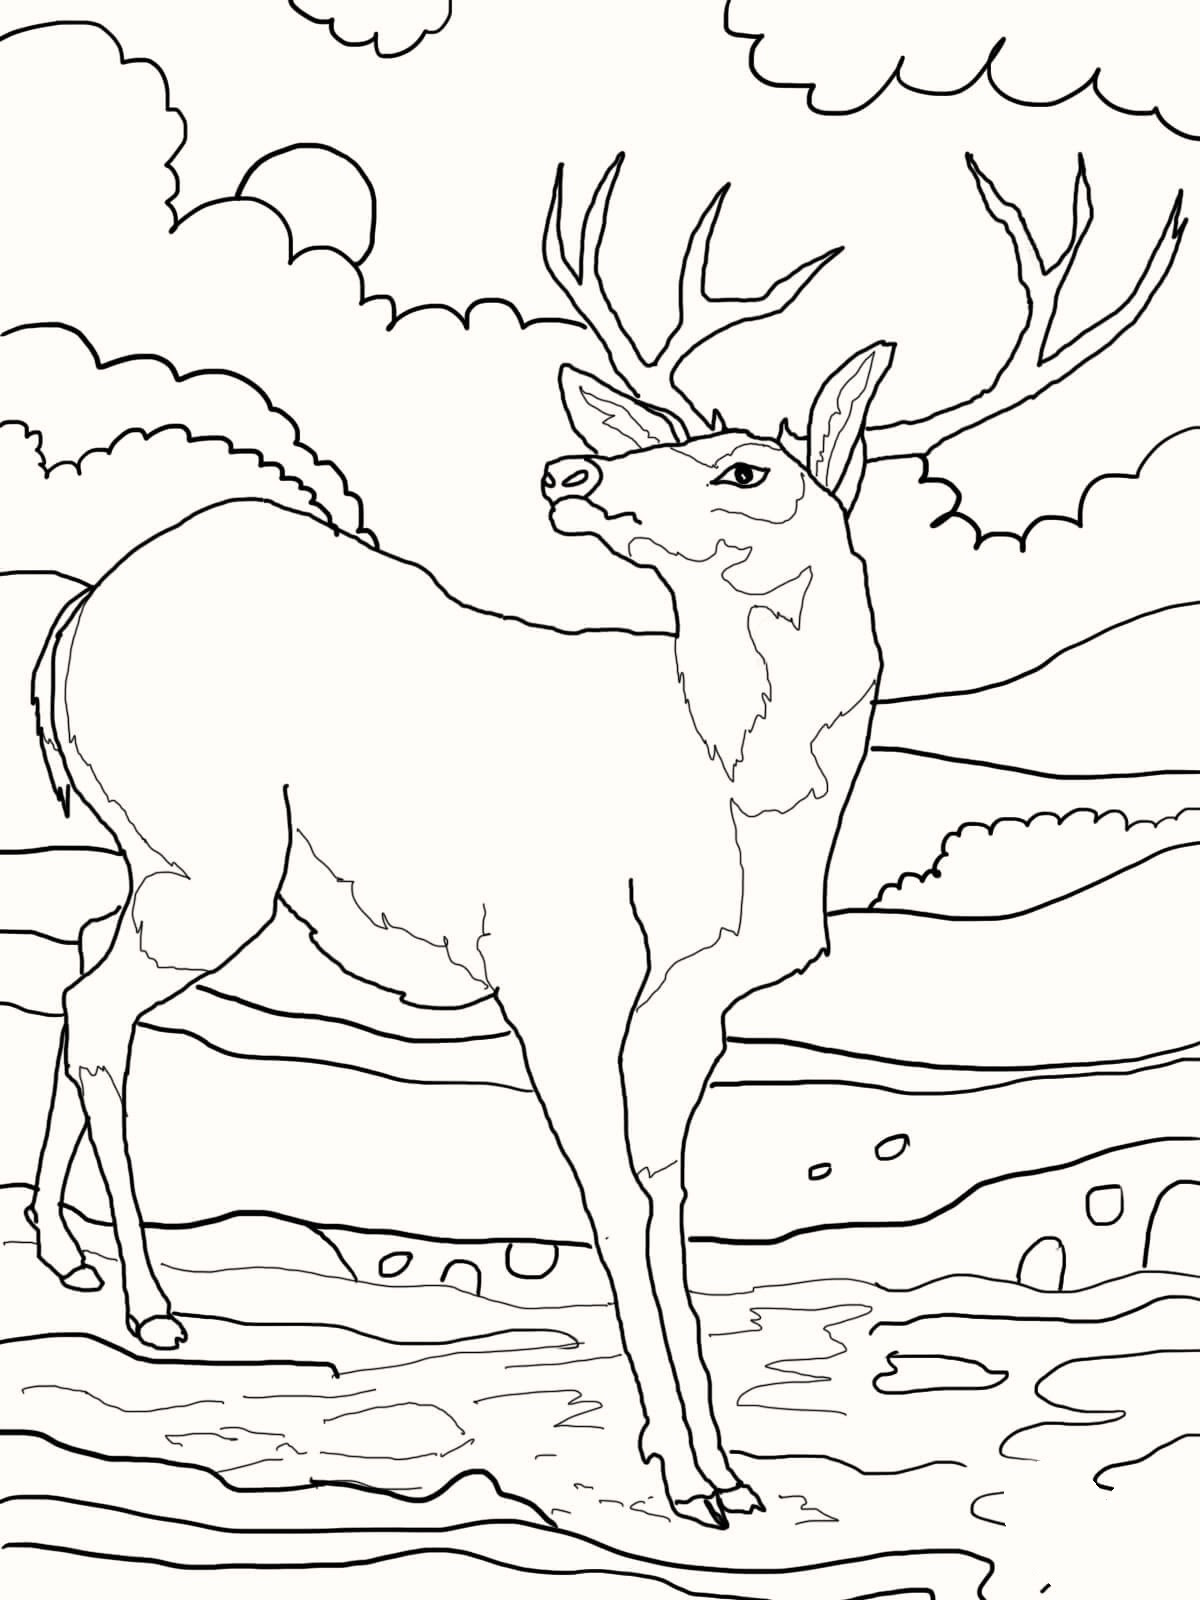 White Tail Deer Coloring Pages | Deer coloring pages, Coloring ... | 1600x1200